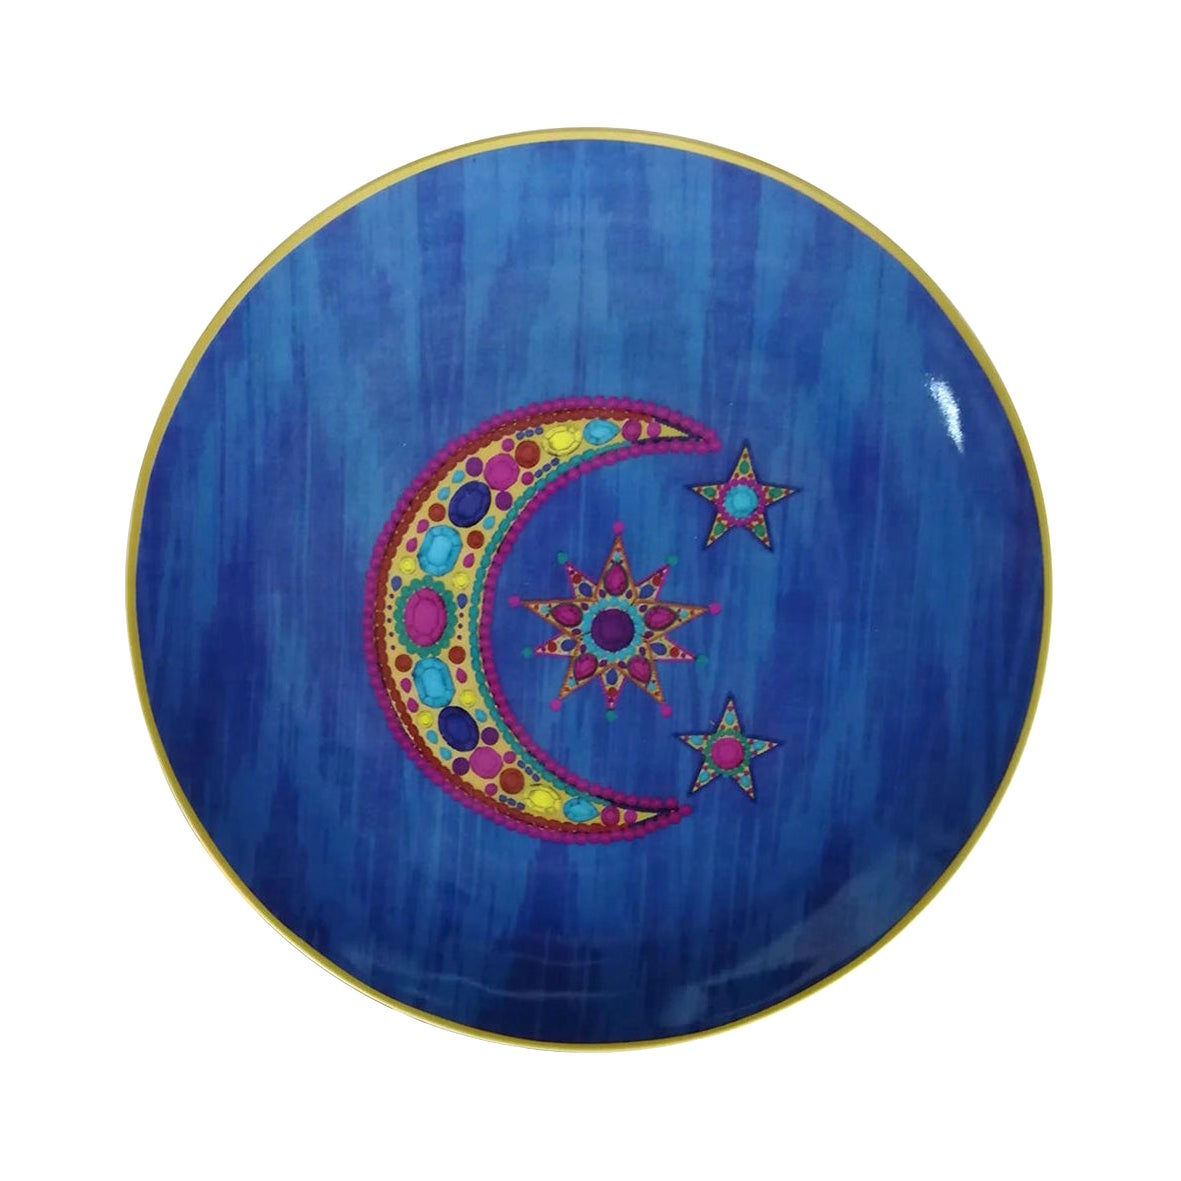 """Les Ottomans """"The Moon Design"""" Small Porcelain Plate by Matthew Williamson"""